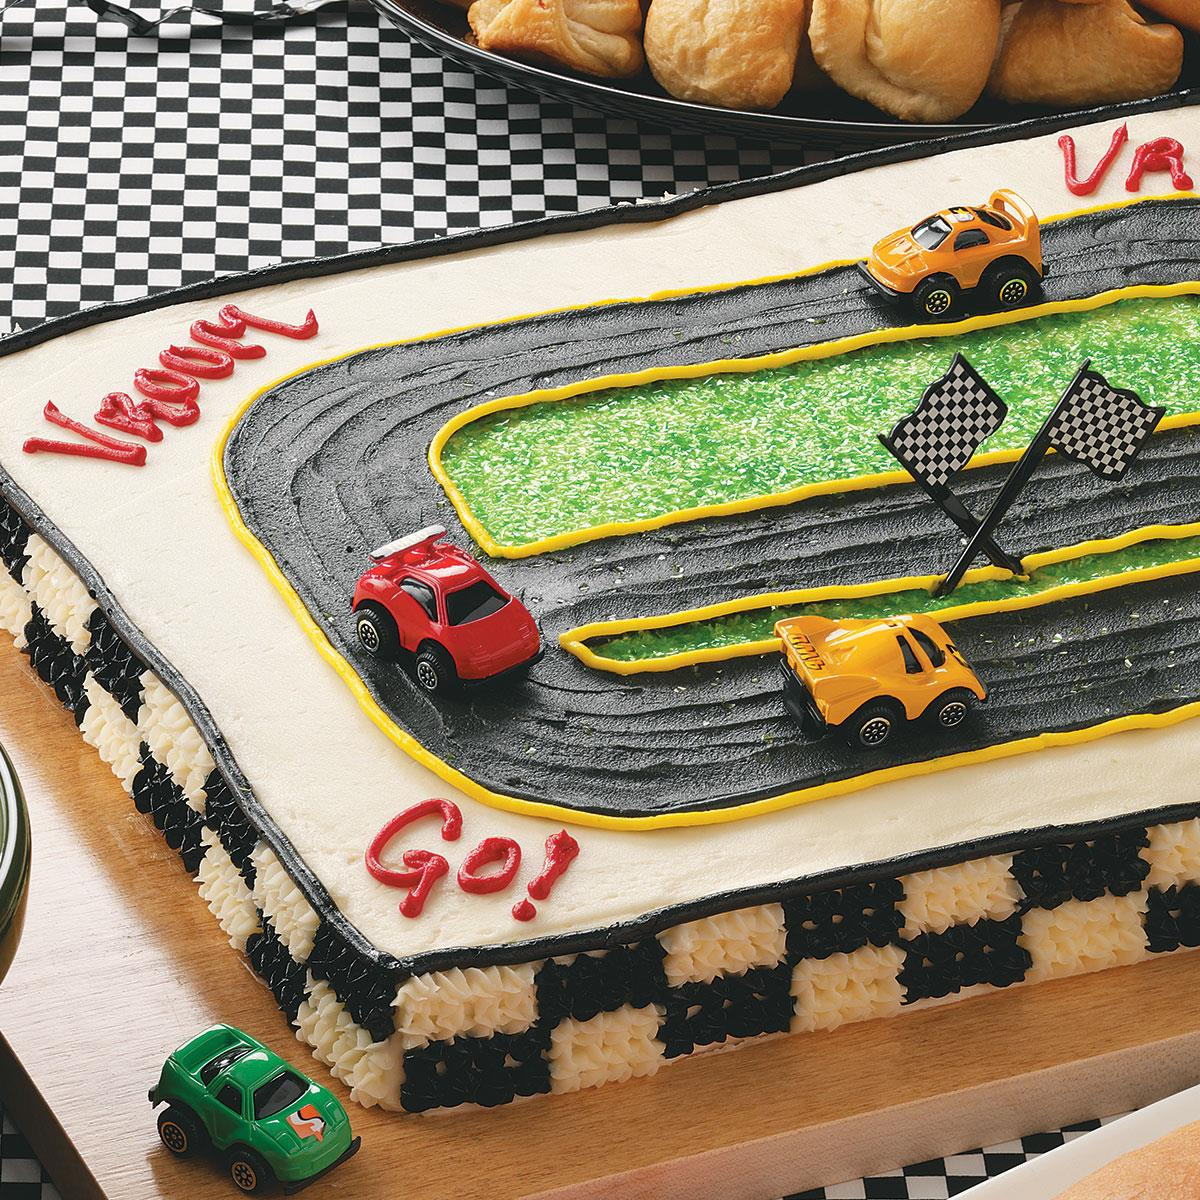 Racetrack Cake Recipe How To Make It Taste Of Home